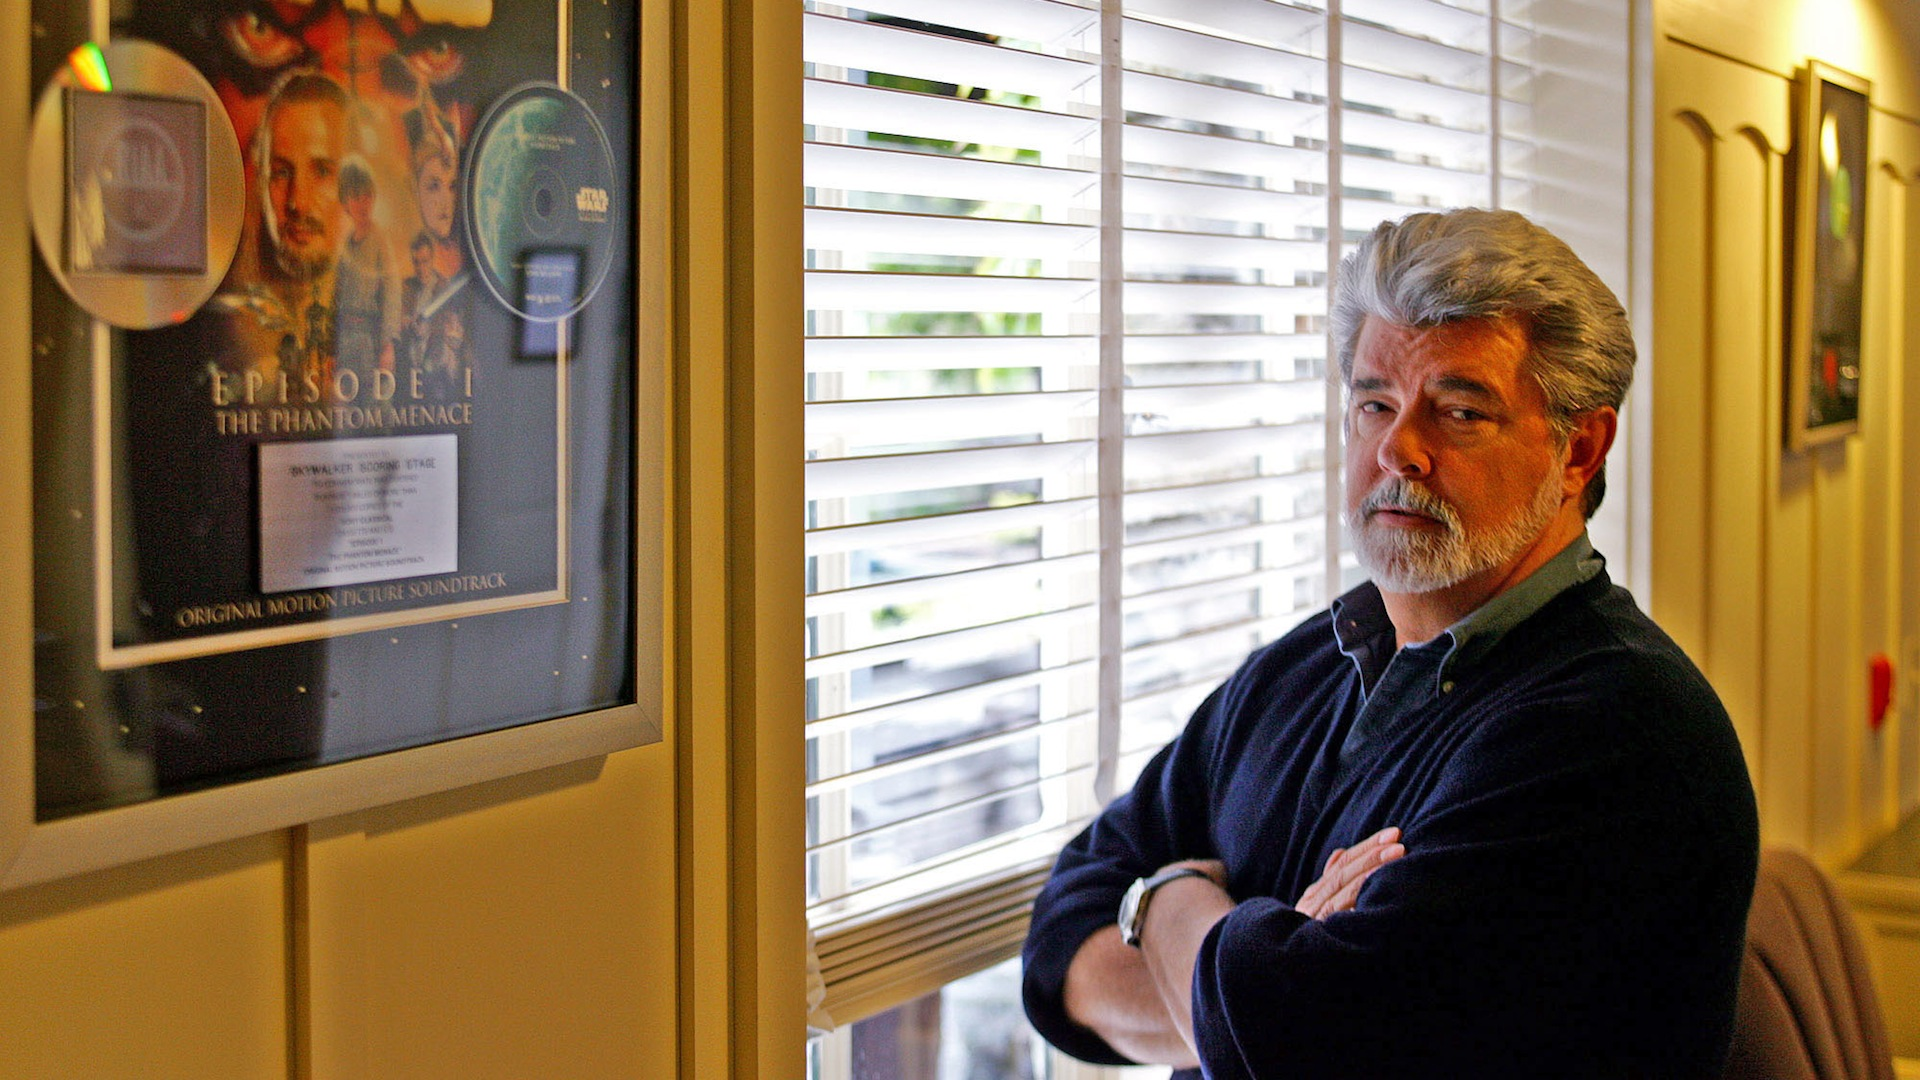 George Lucas: To feel the true force of 'Star Wars,' he had to learn to let it go